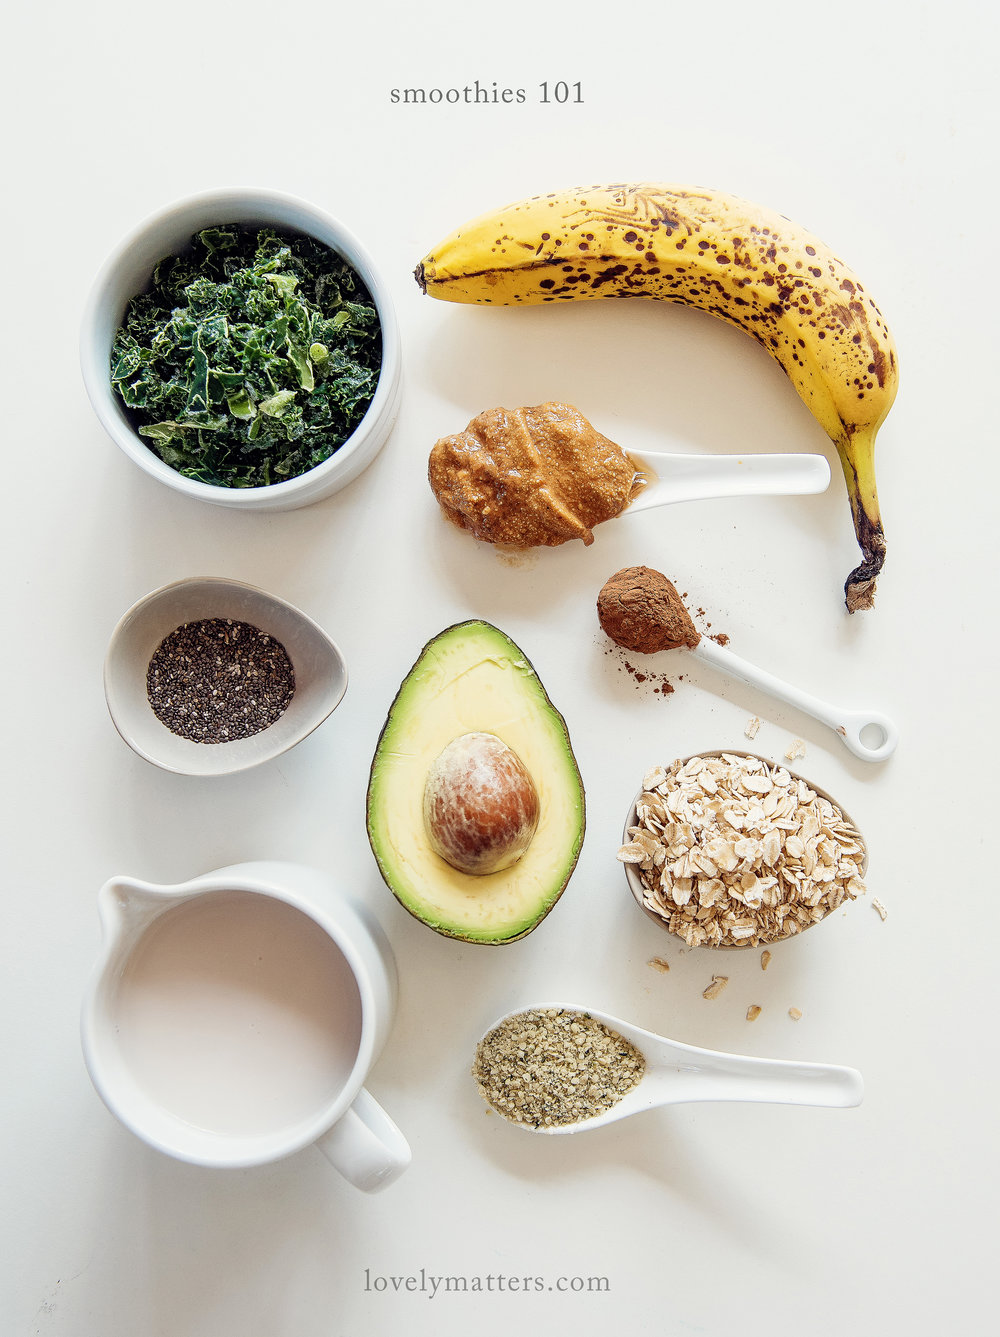 Smoothies 101 - the why and what of smoothie ingredients - lovely matters blog by Heather Walker